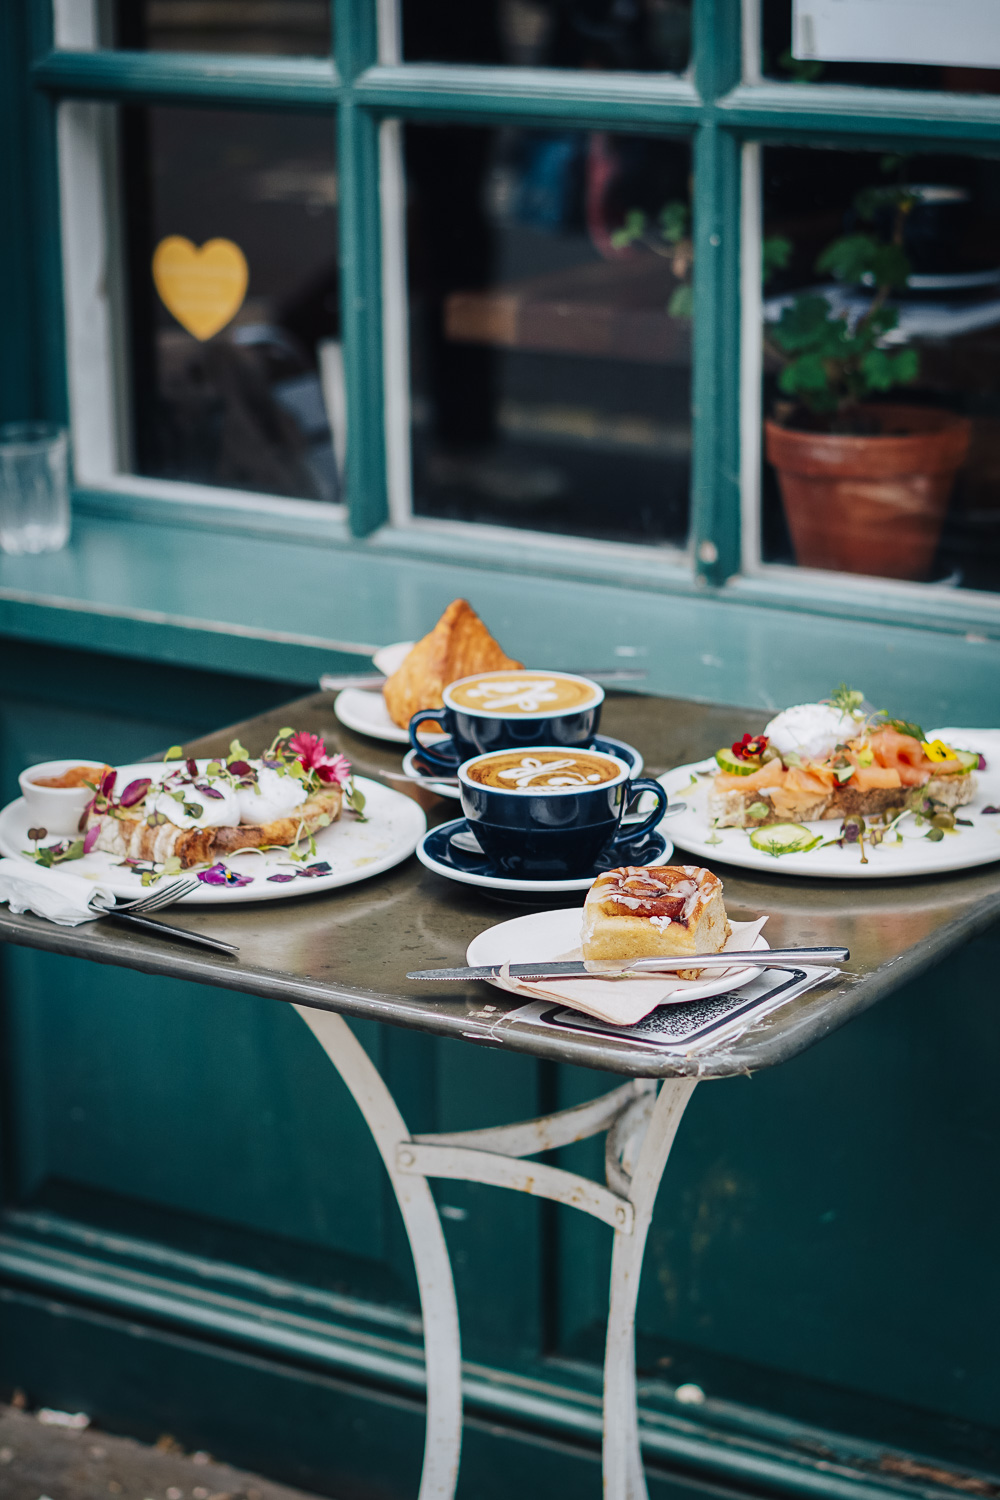 Specialty coffee and brunch at The Gentlemen Baristas in Union Street, South London, UK